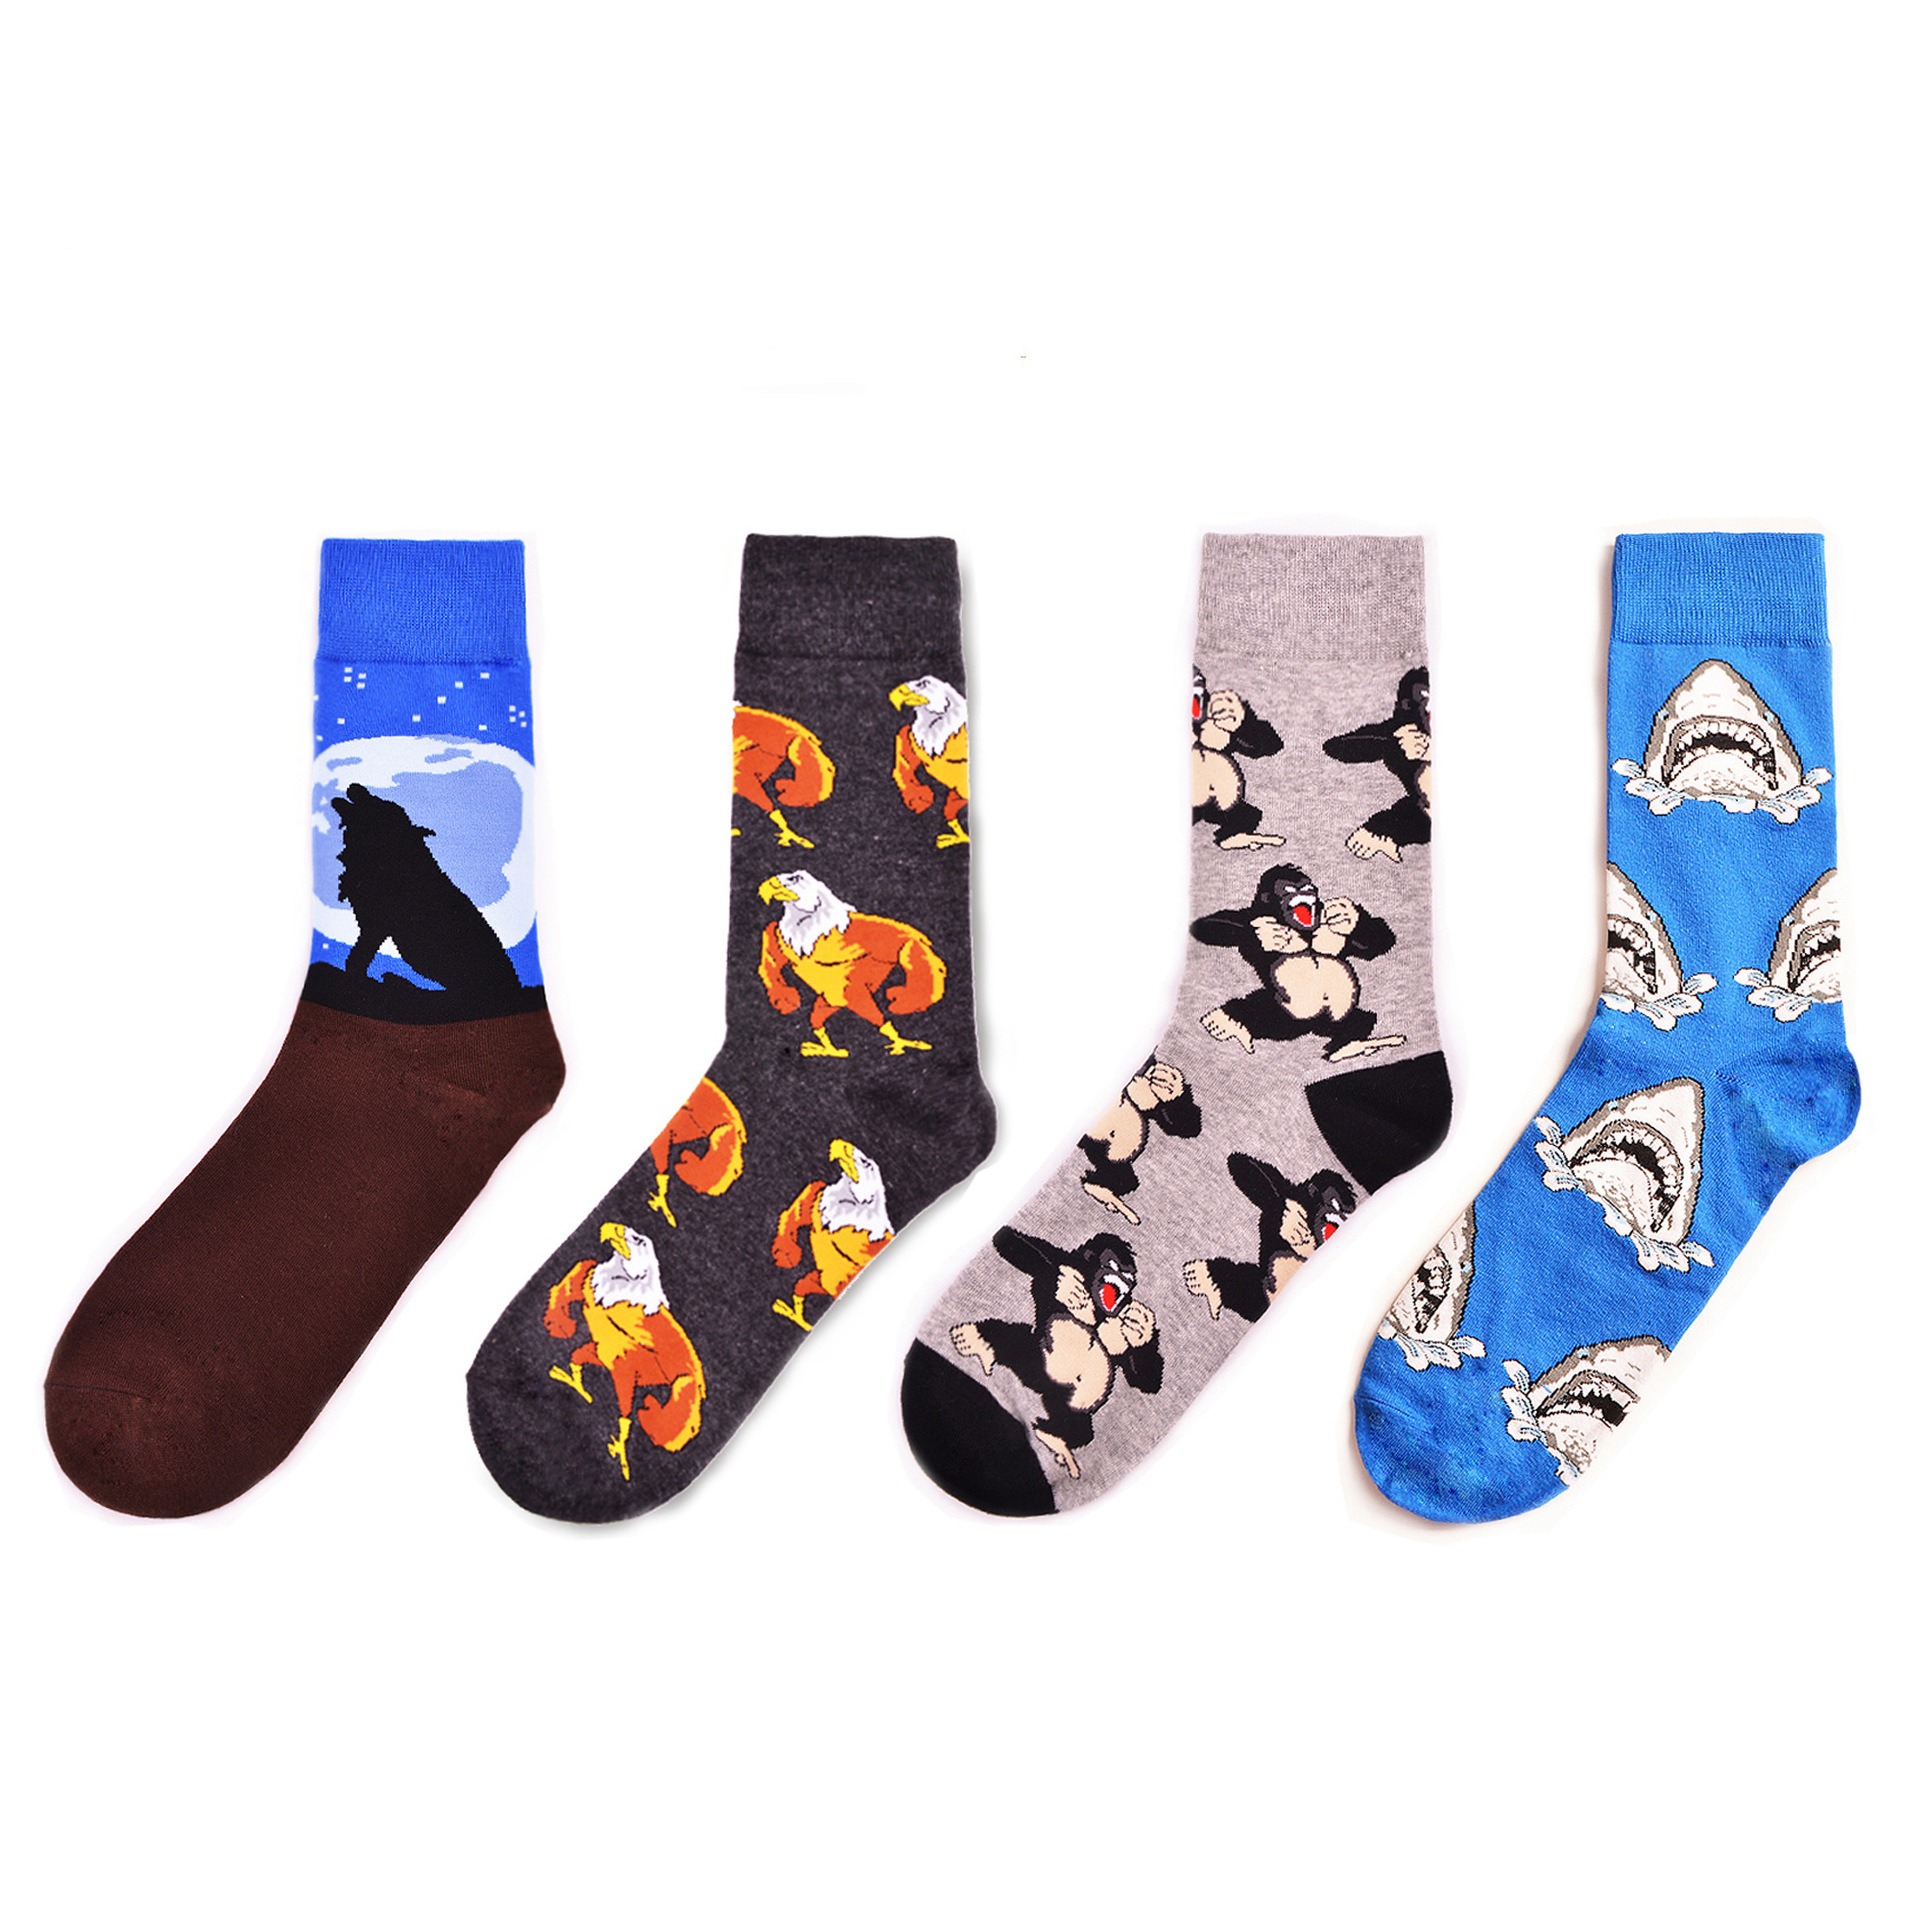 Funny Men's Combed Cotton Crew Dress Socks Novelty Wolf Shark Animal Pattern Fashion Skateboard Socks For Wedding Gifts